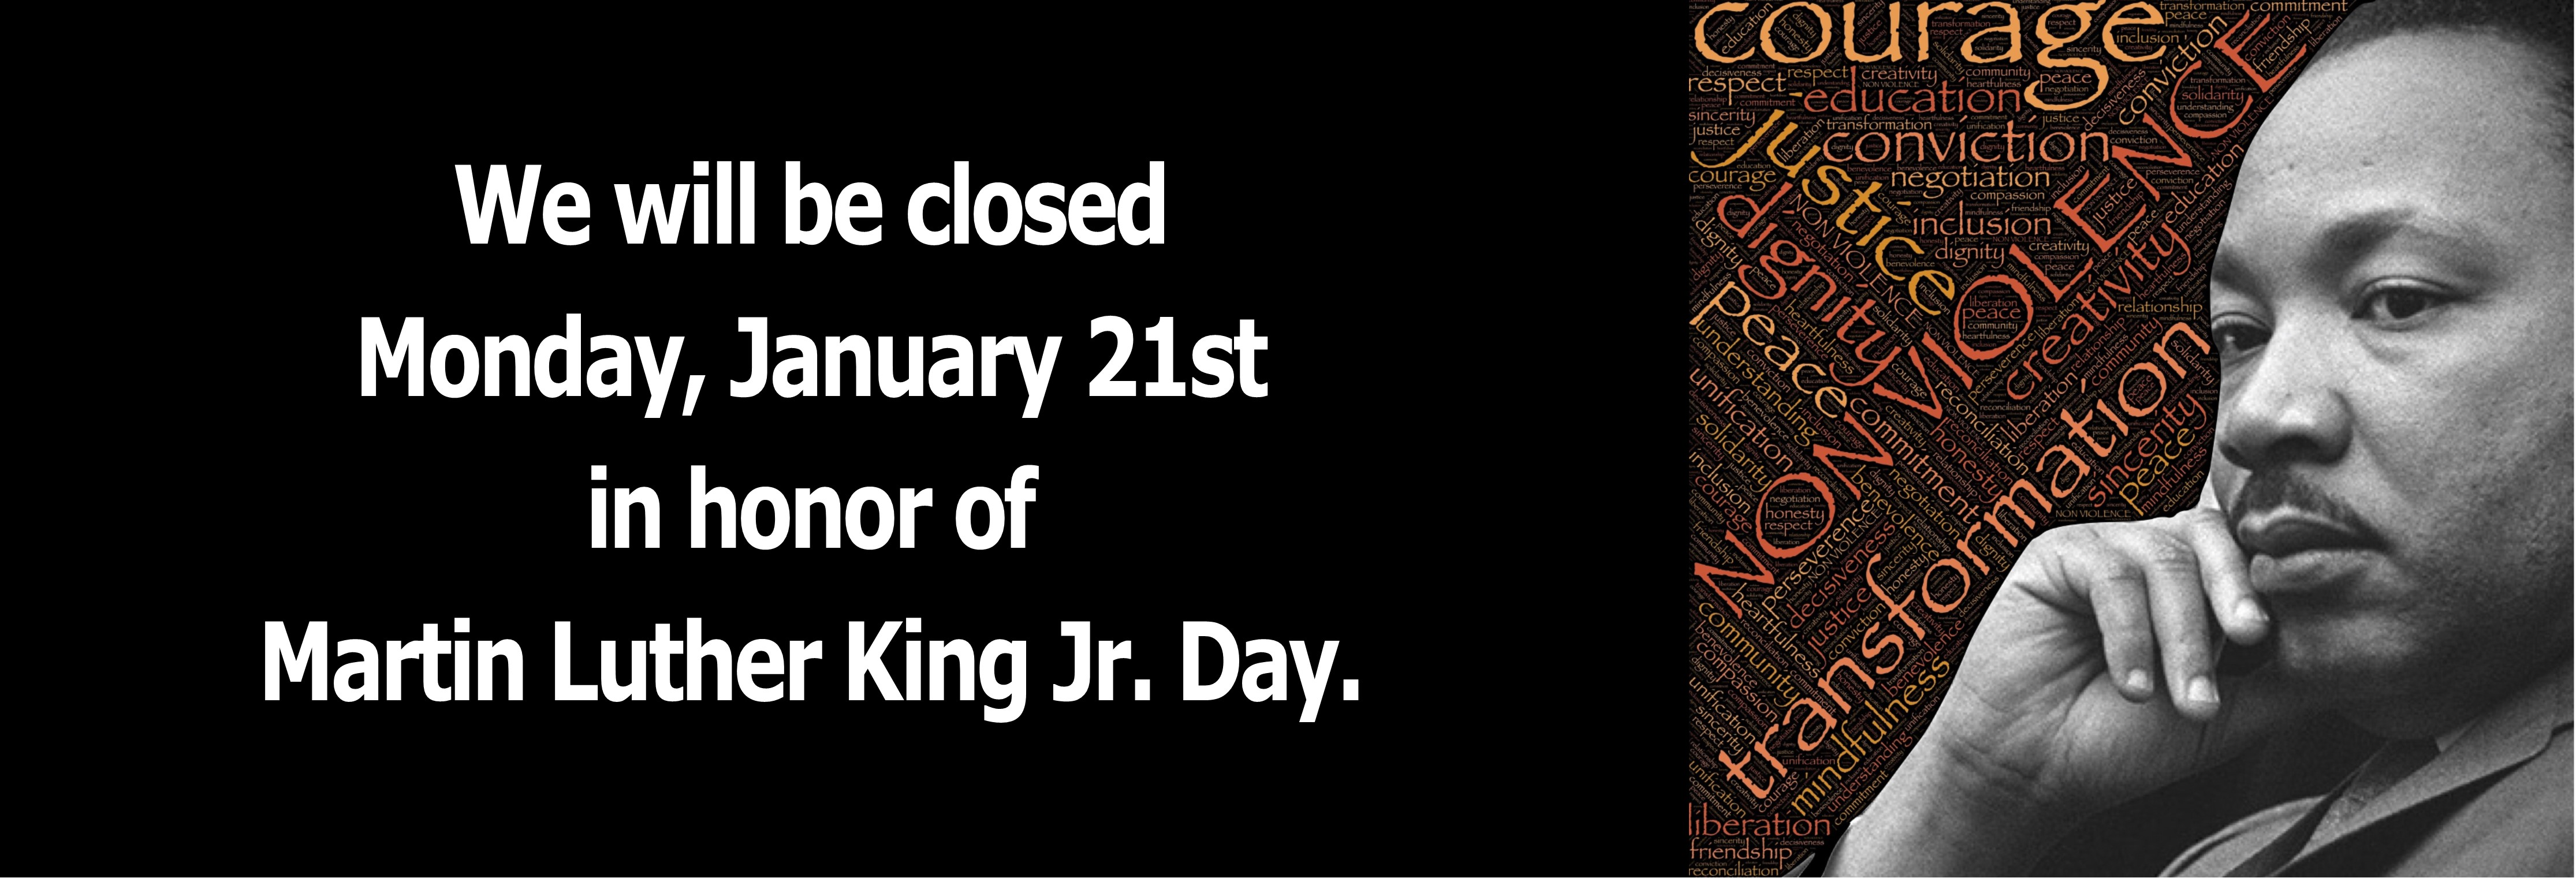 We will be closed Monday, January 21st in honor of Martin Luther King Jr. Day.